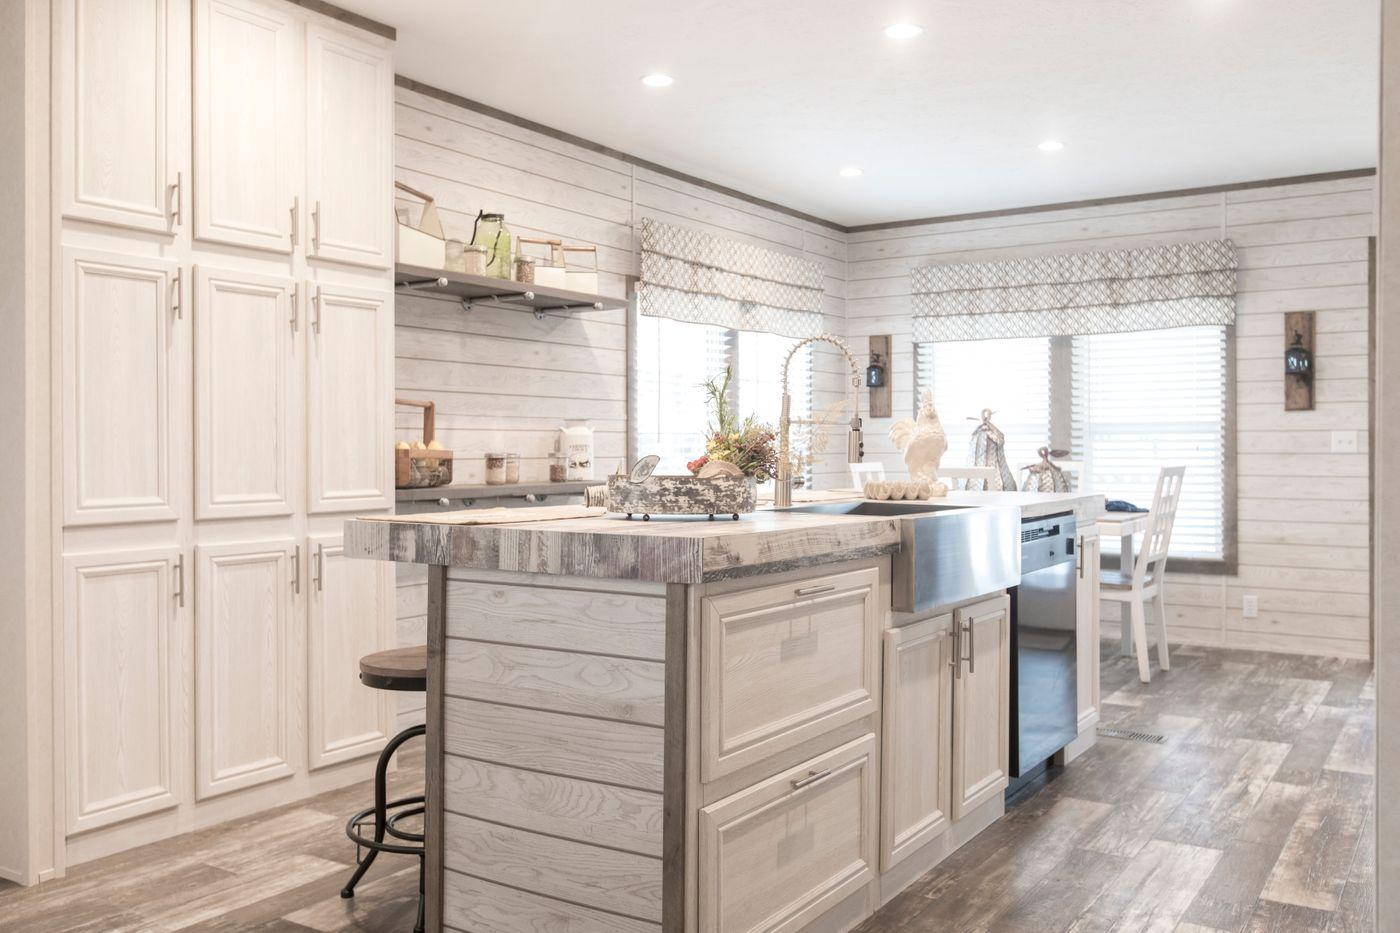 The Southern Farmhouse Kitchen